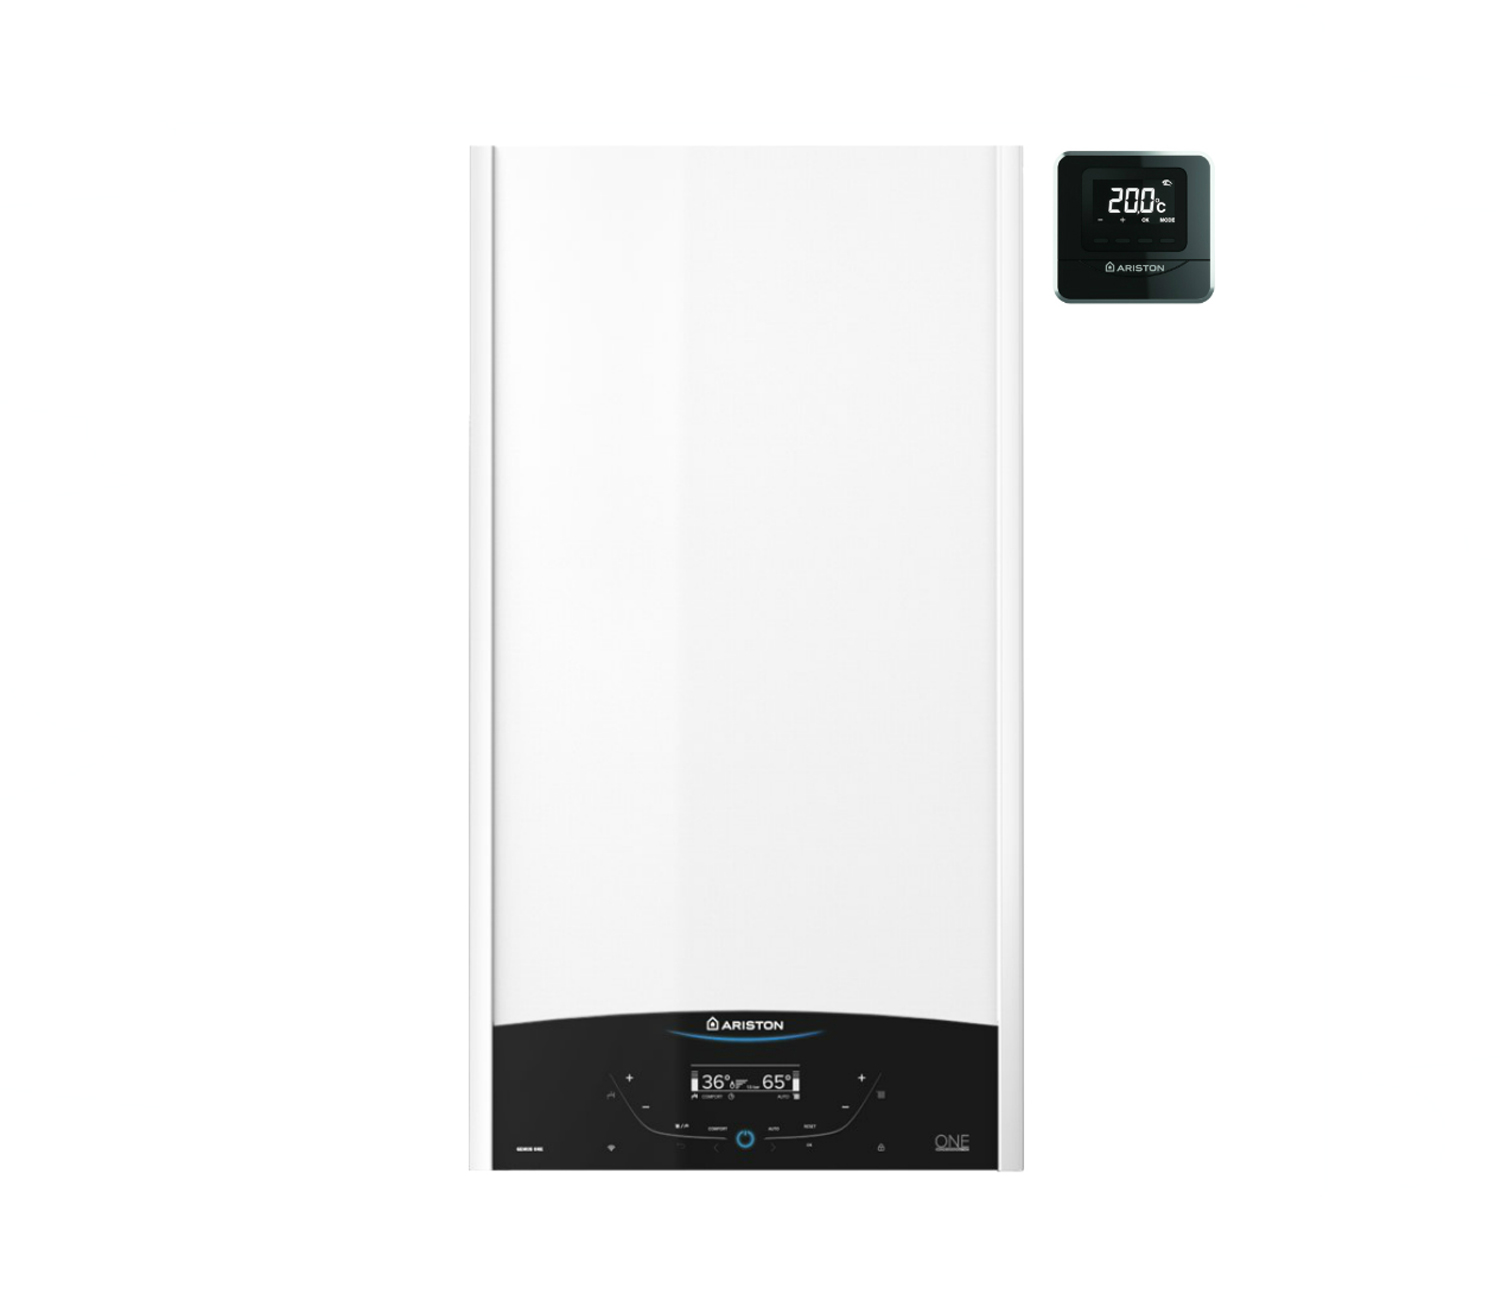 ARISTON Genus One Net 30, Ariston Boilers for Sale